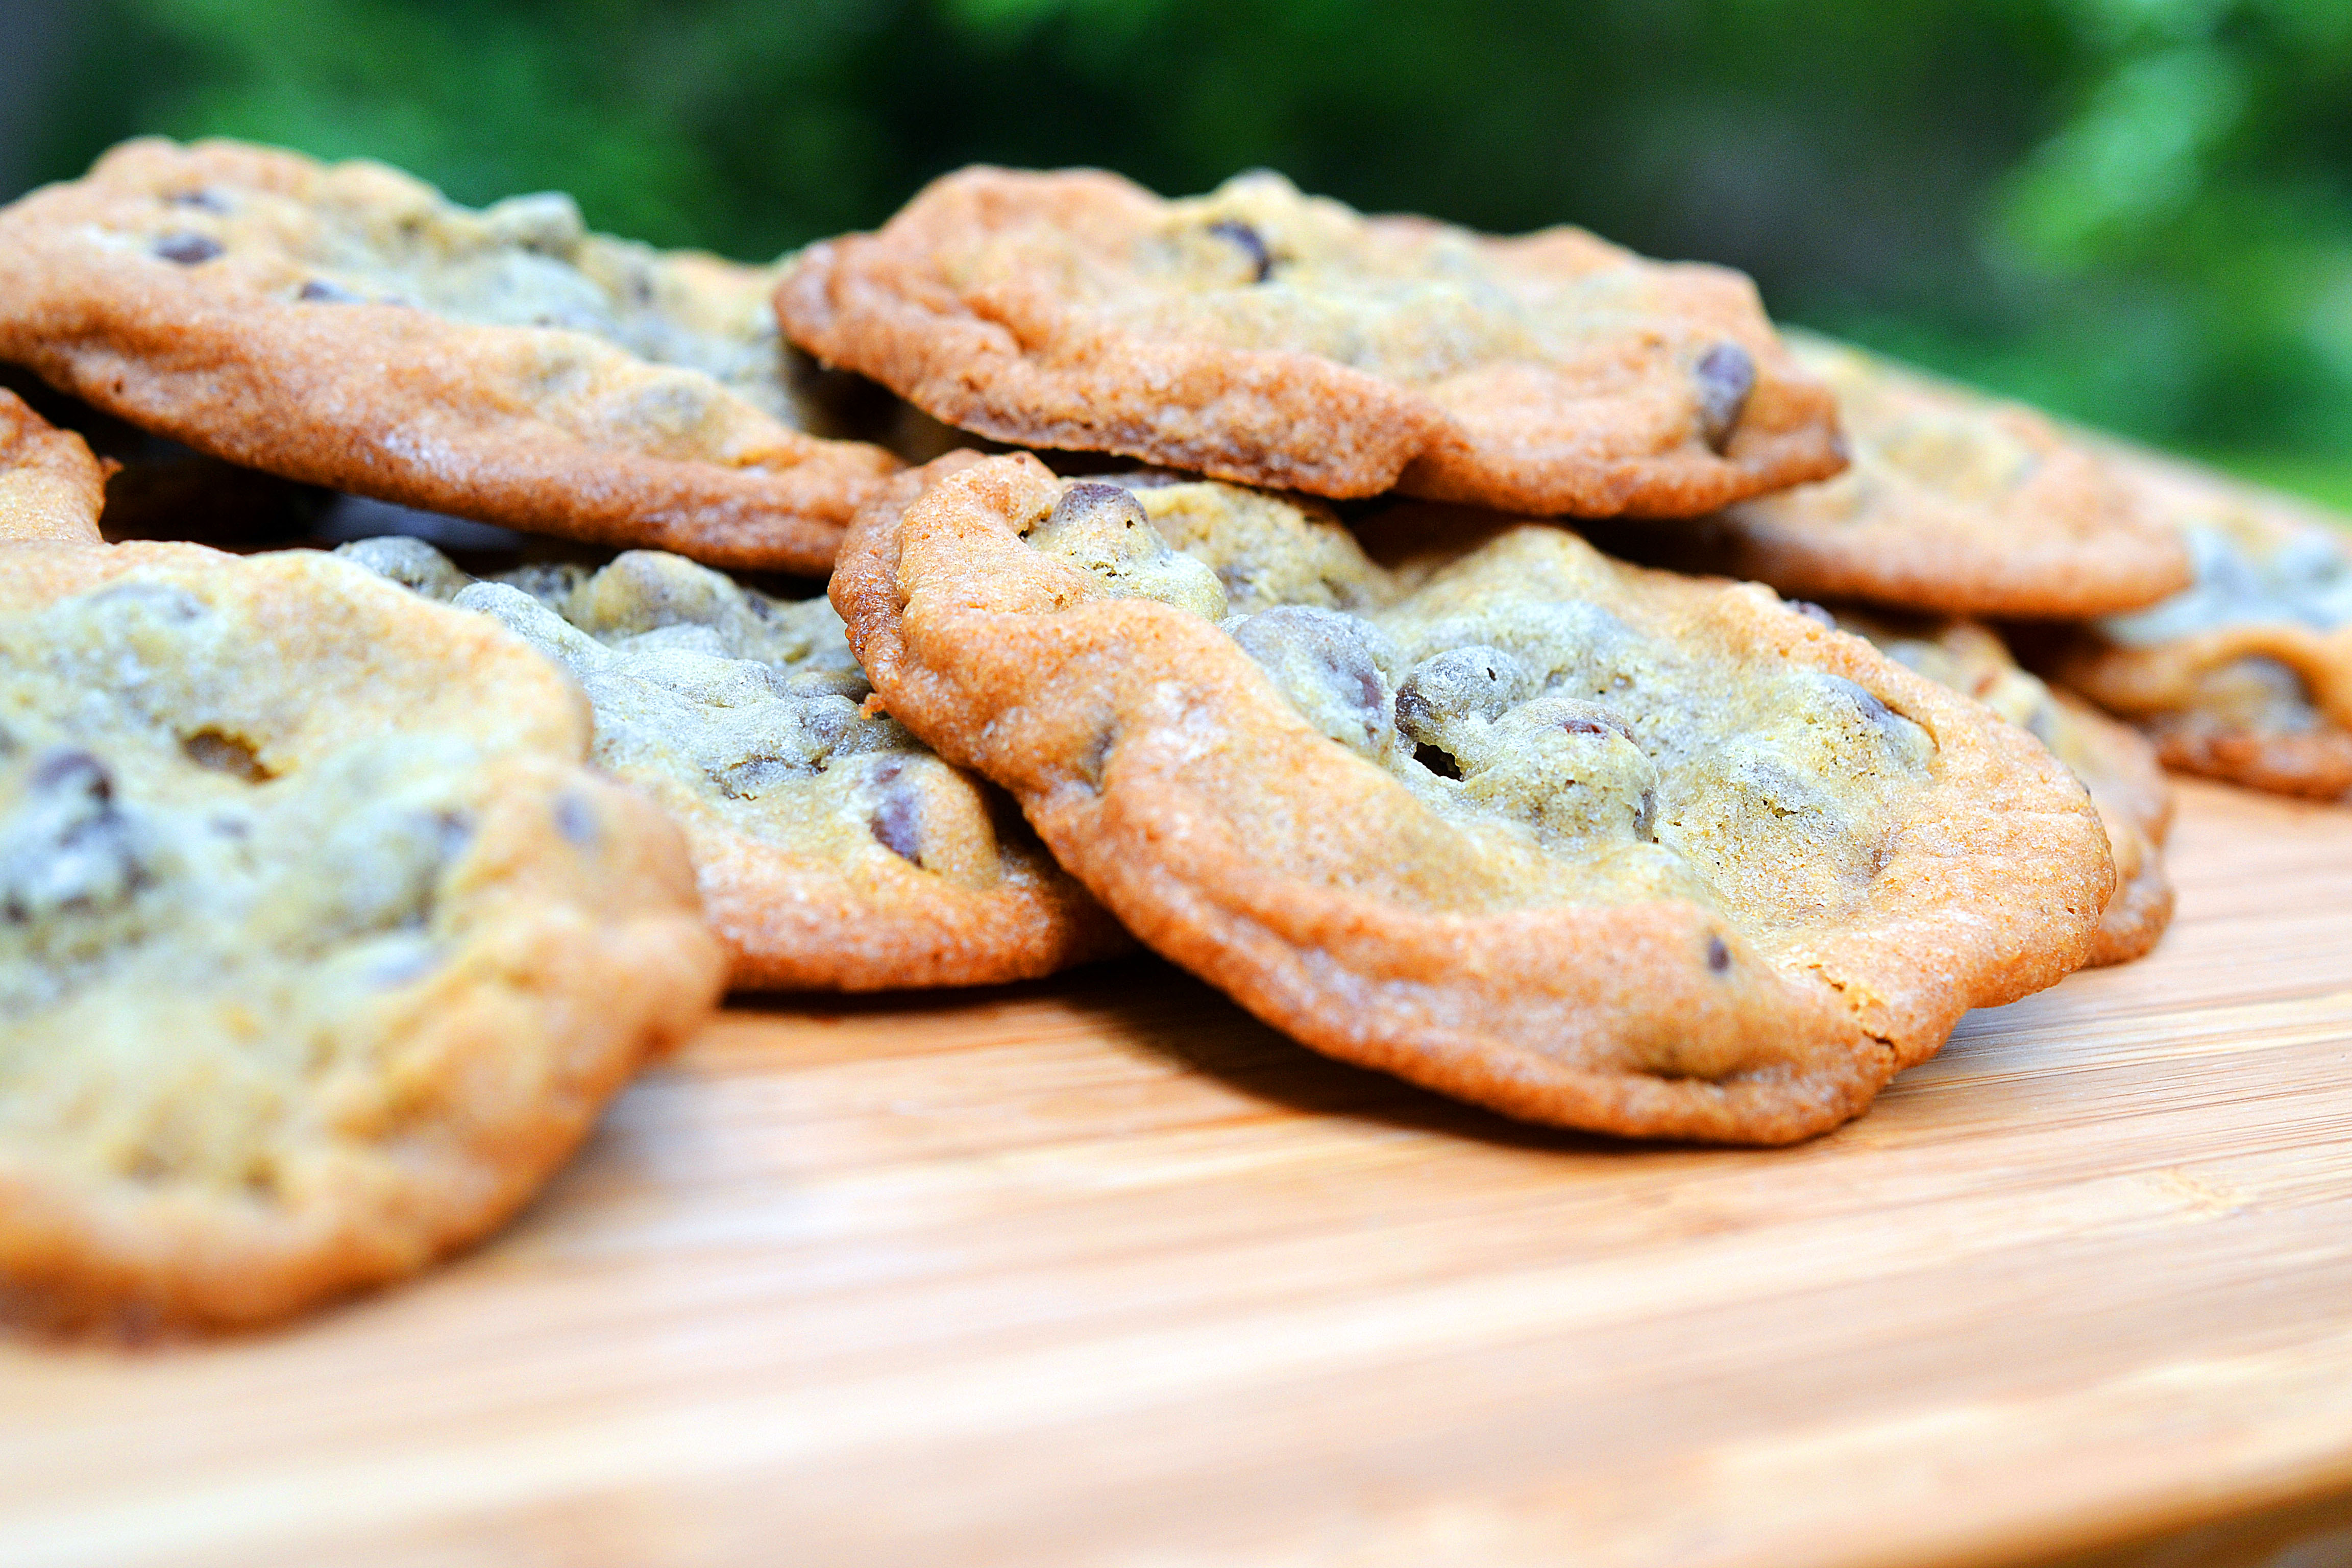 CHOCOLATE CHIP ICE CREAM SANDWICHES | AMBS LOVES FOOD